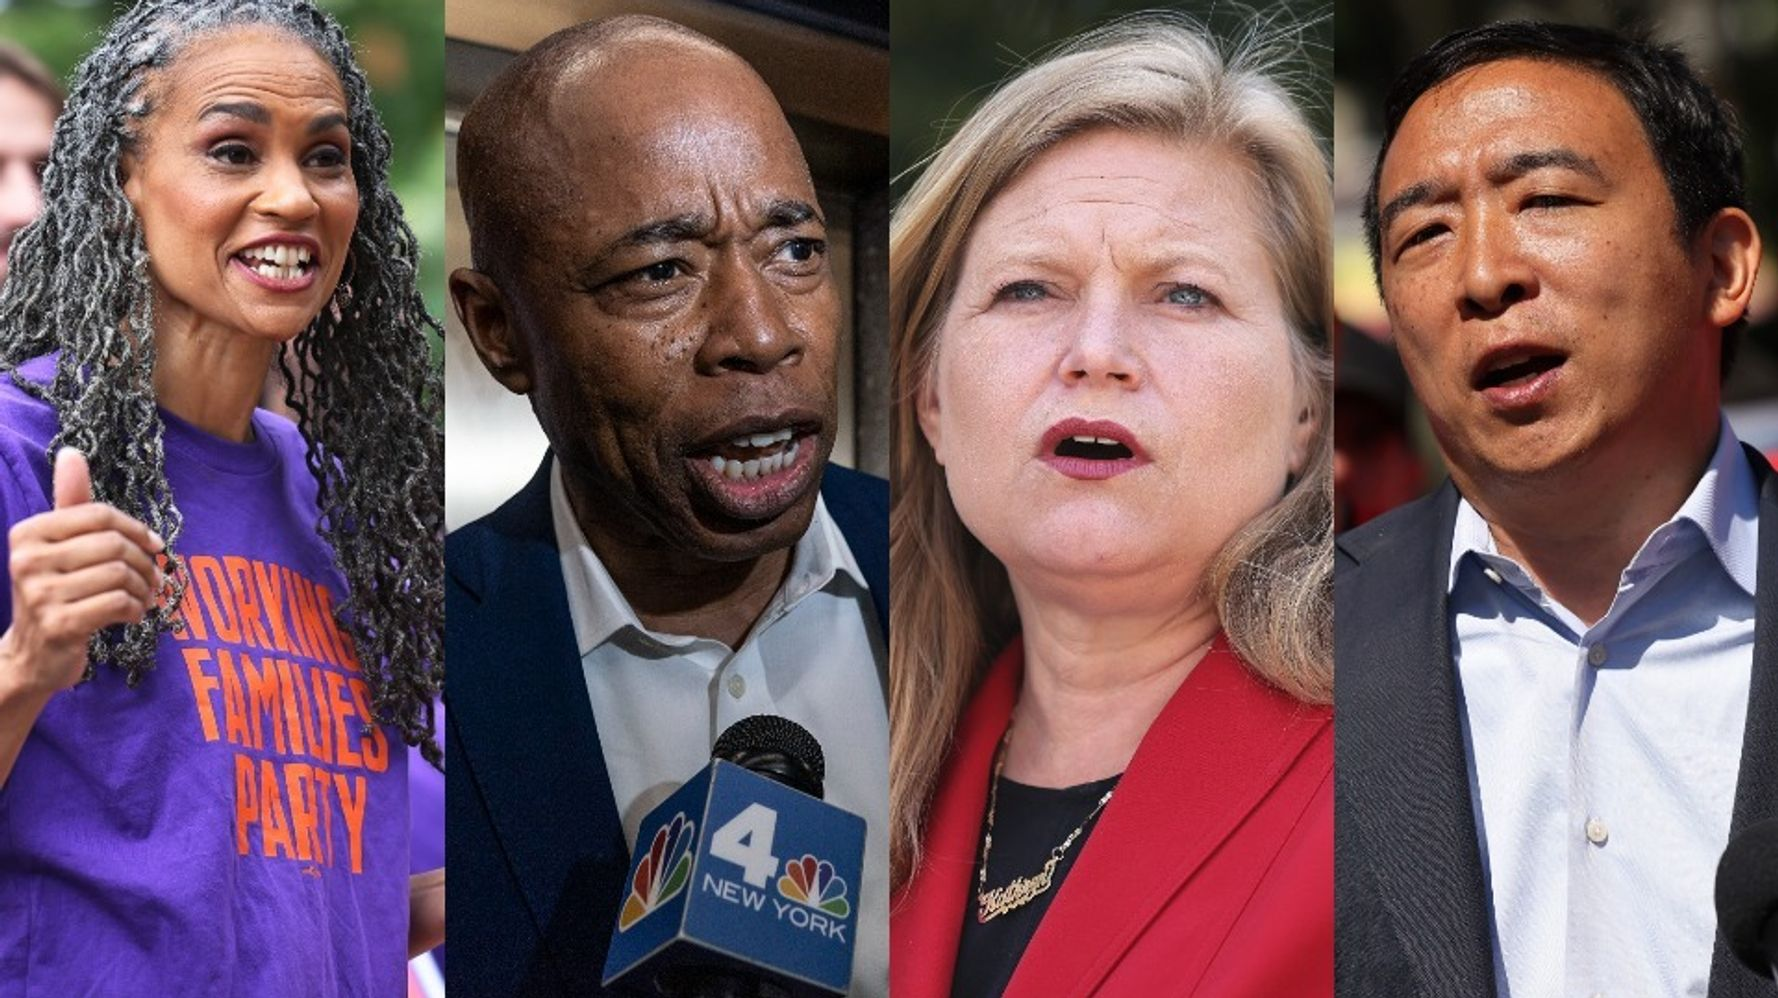 New York City's Mayoral Race Remains Unpredictable, Even After Voting Has Begun